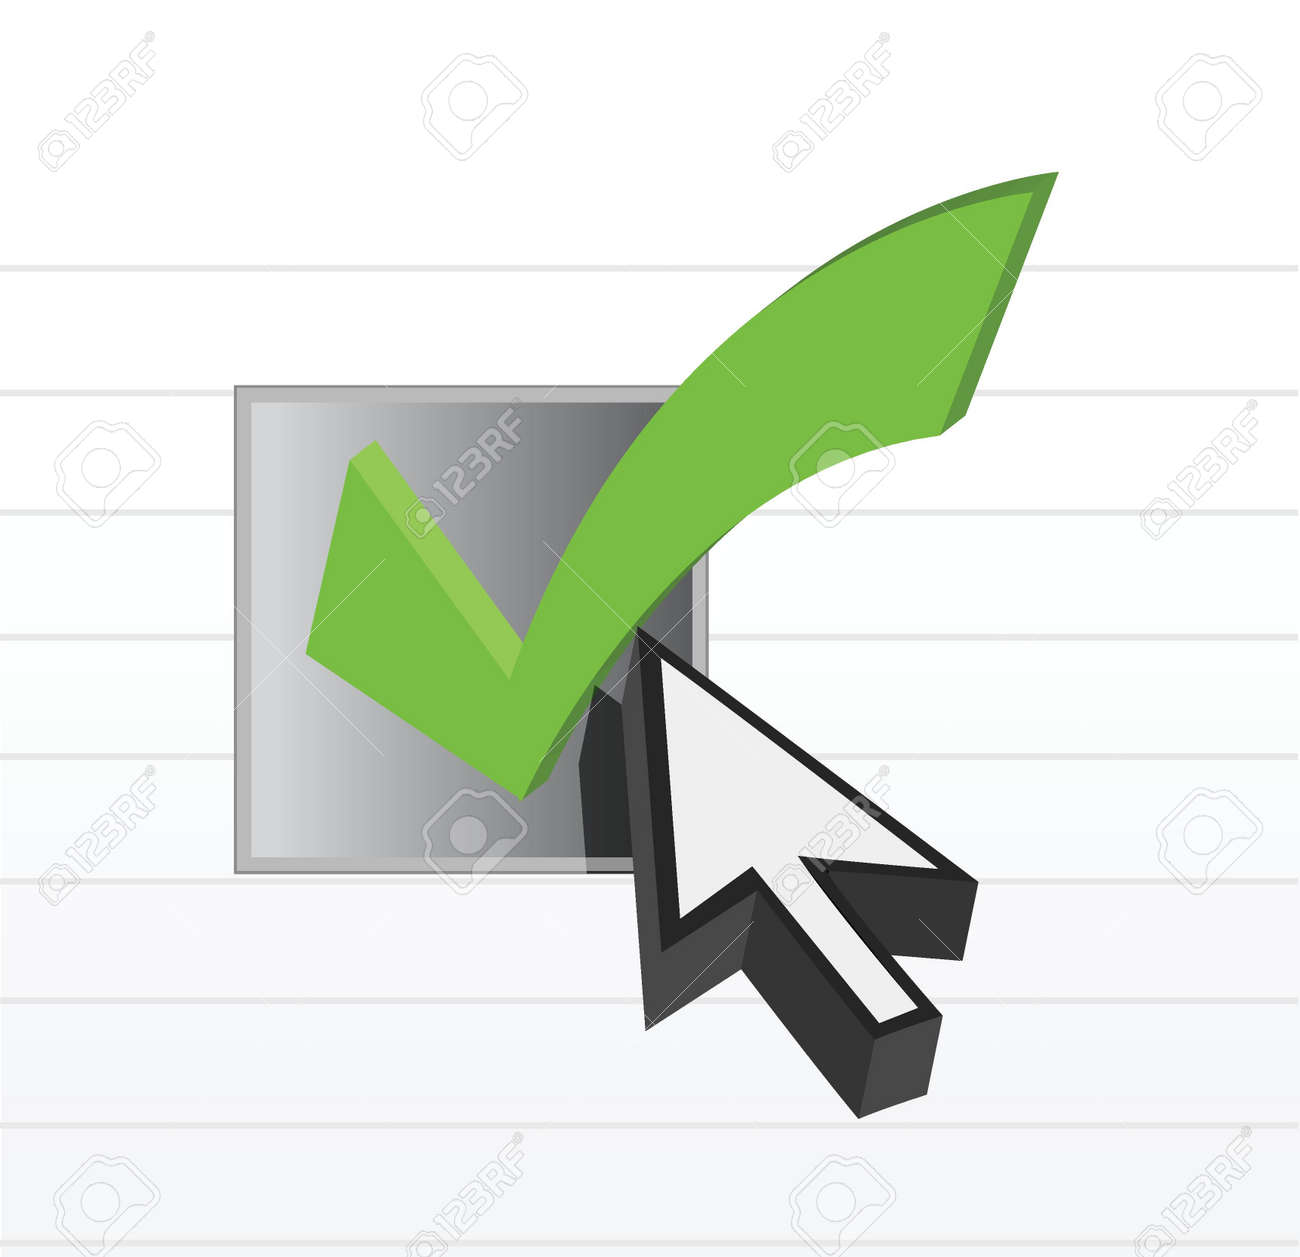 check mark online selection and cursor illustration Stock Photo - 15342230